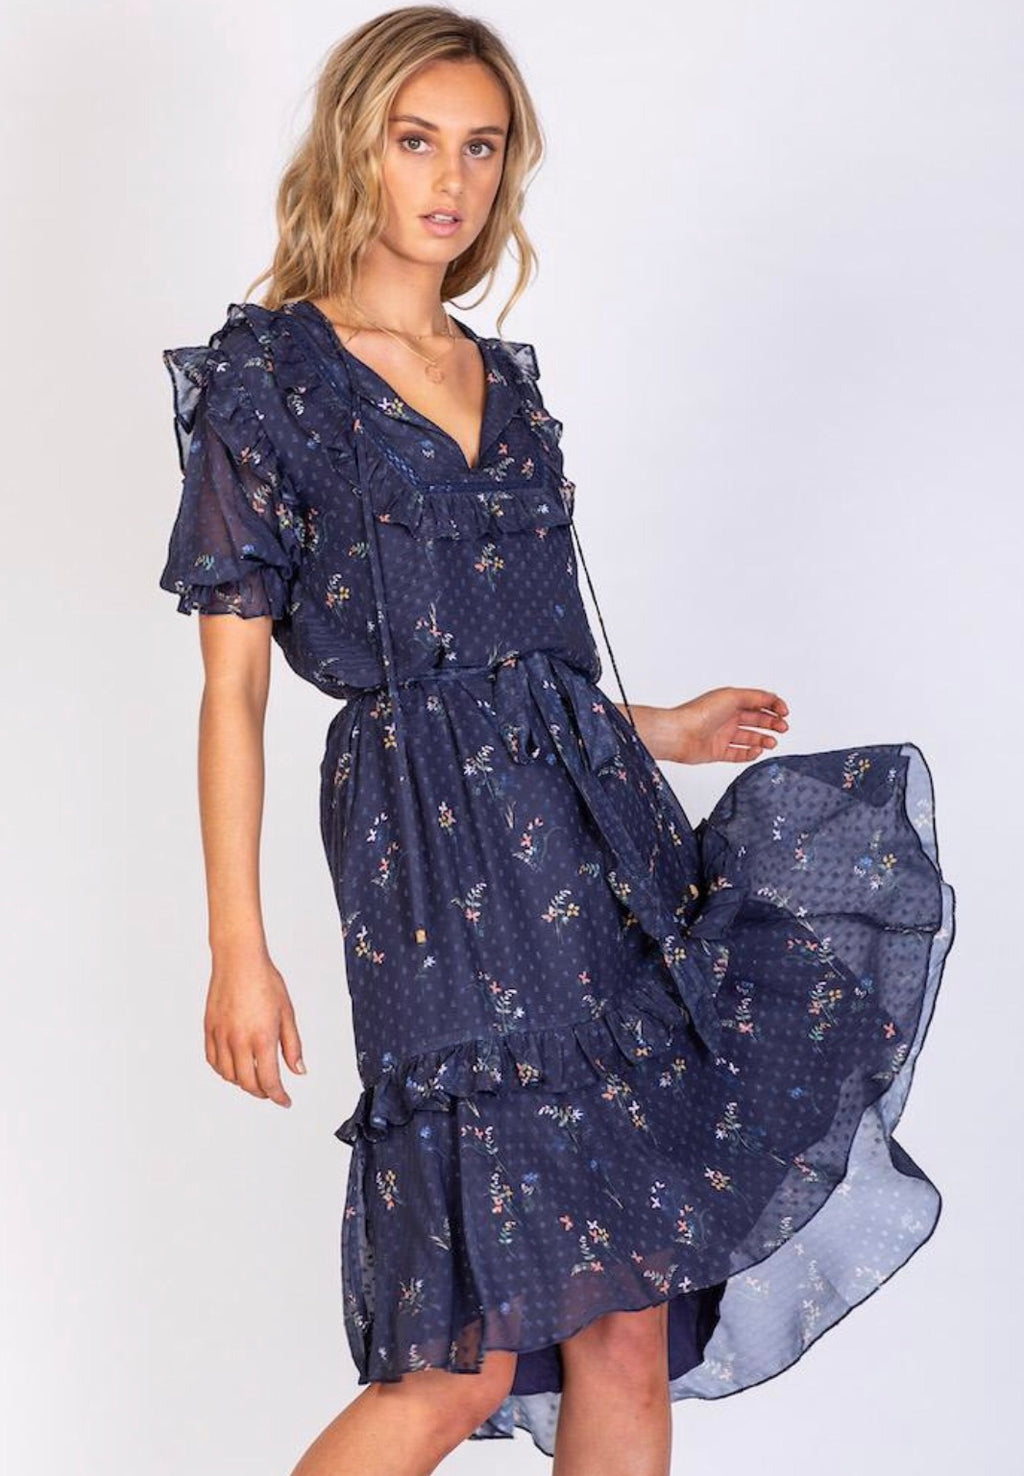 Summertime Blues Dress